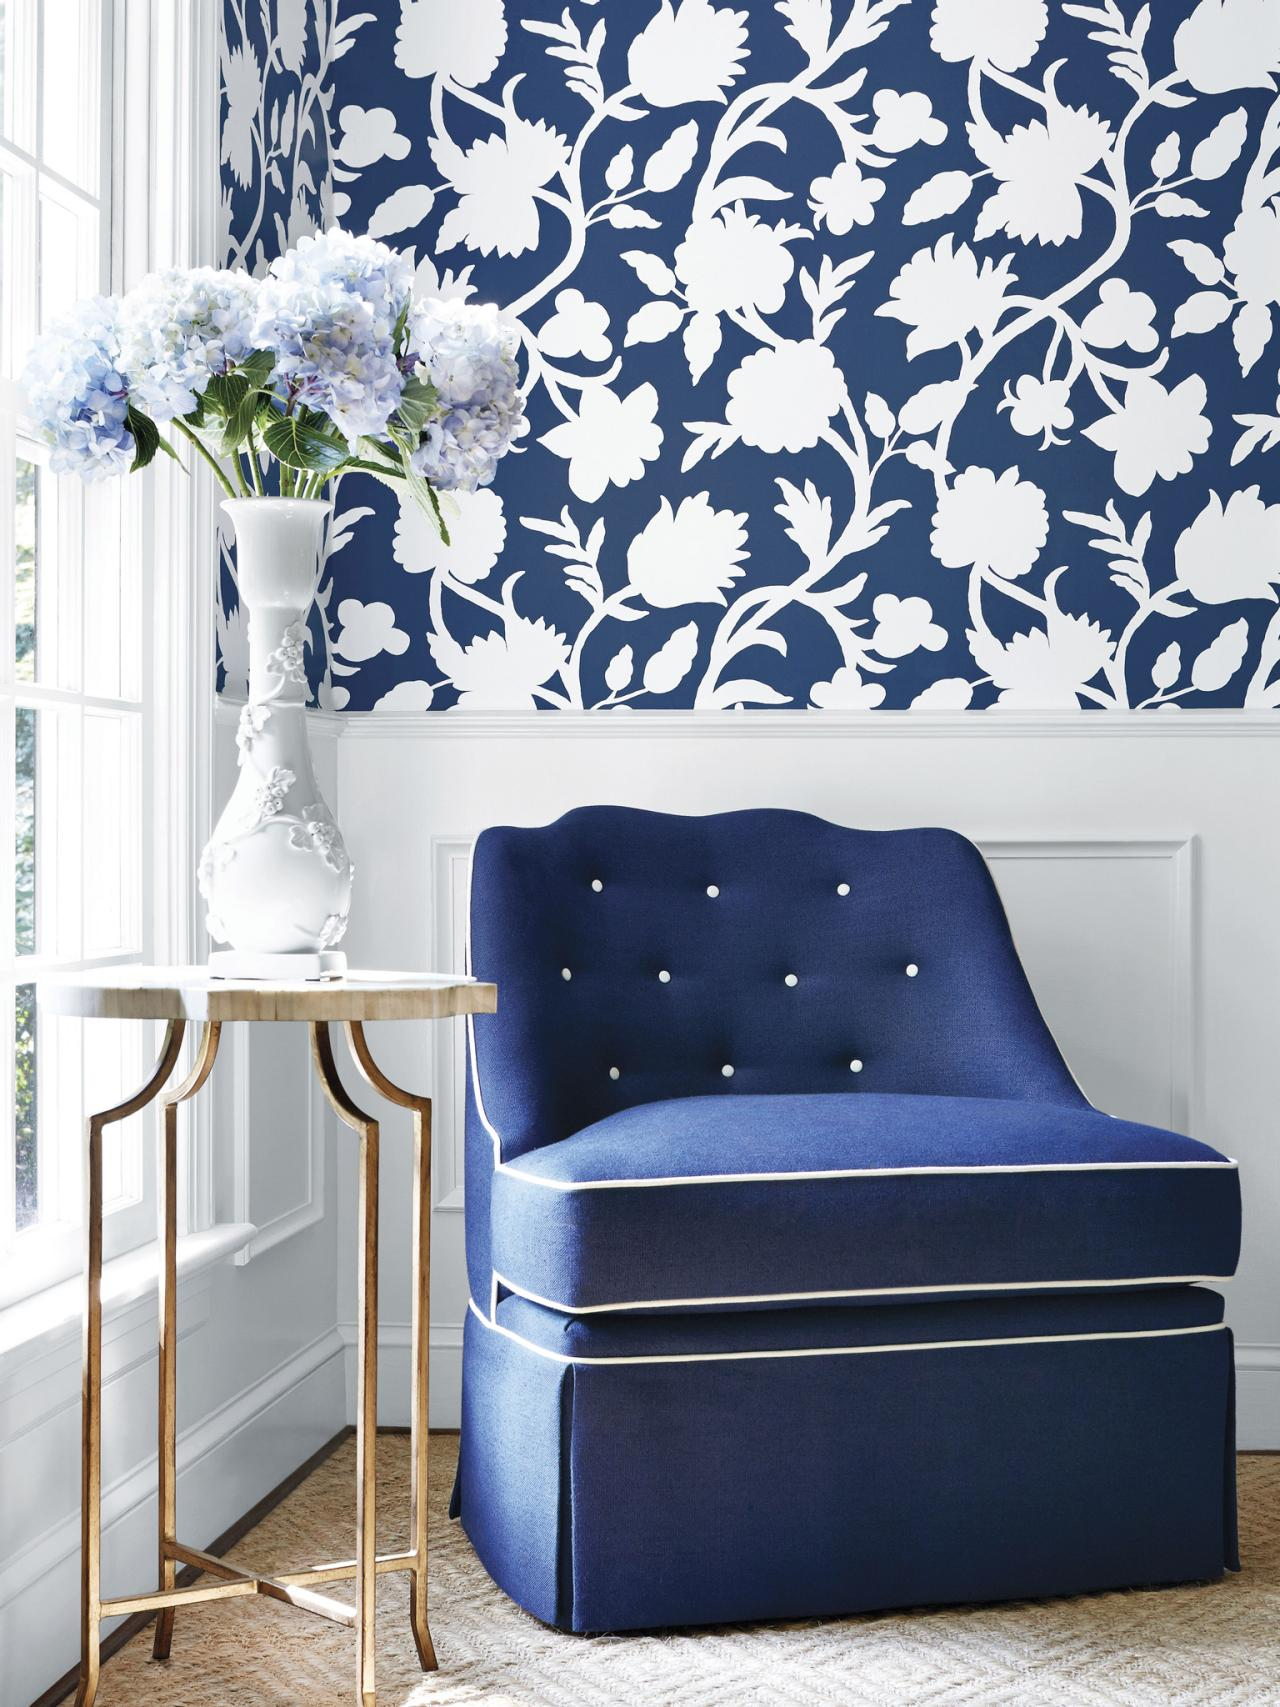 Mood Board Why Navy Peony is the Best Pantone Color for This Fall 5 navy peony Mood Board: Why Navy Peony is the Best Pantone Color for This Fall Mood Board Why Navy Peony is the Best Pantone Color for This Fall 5